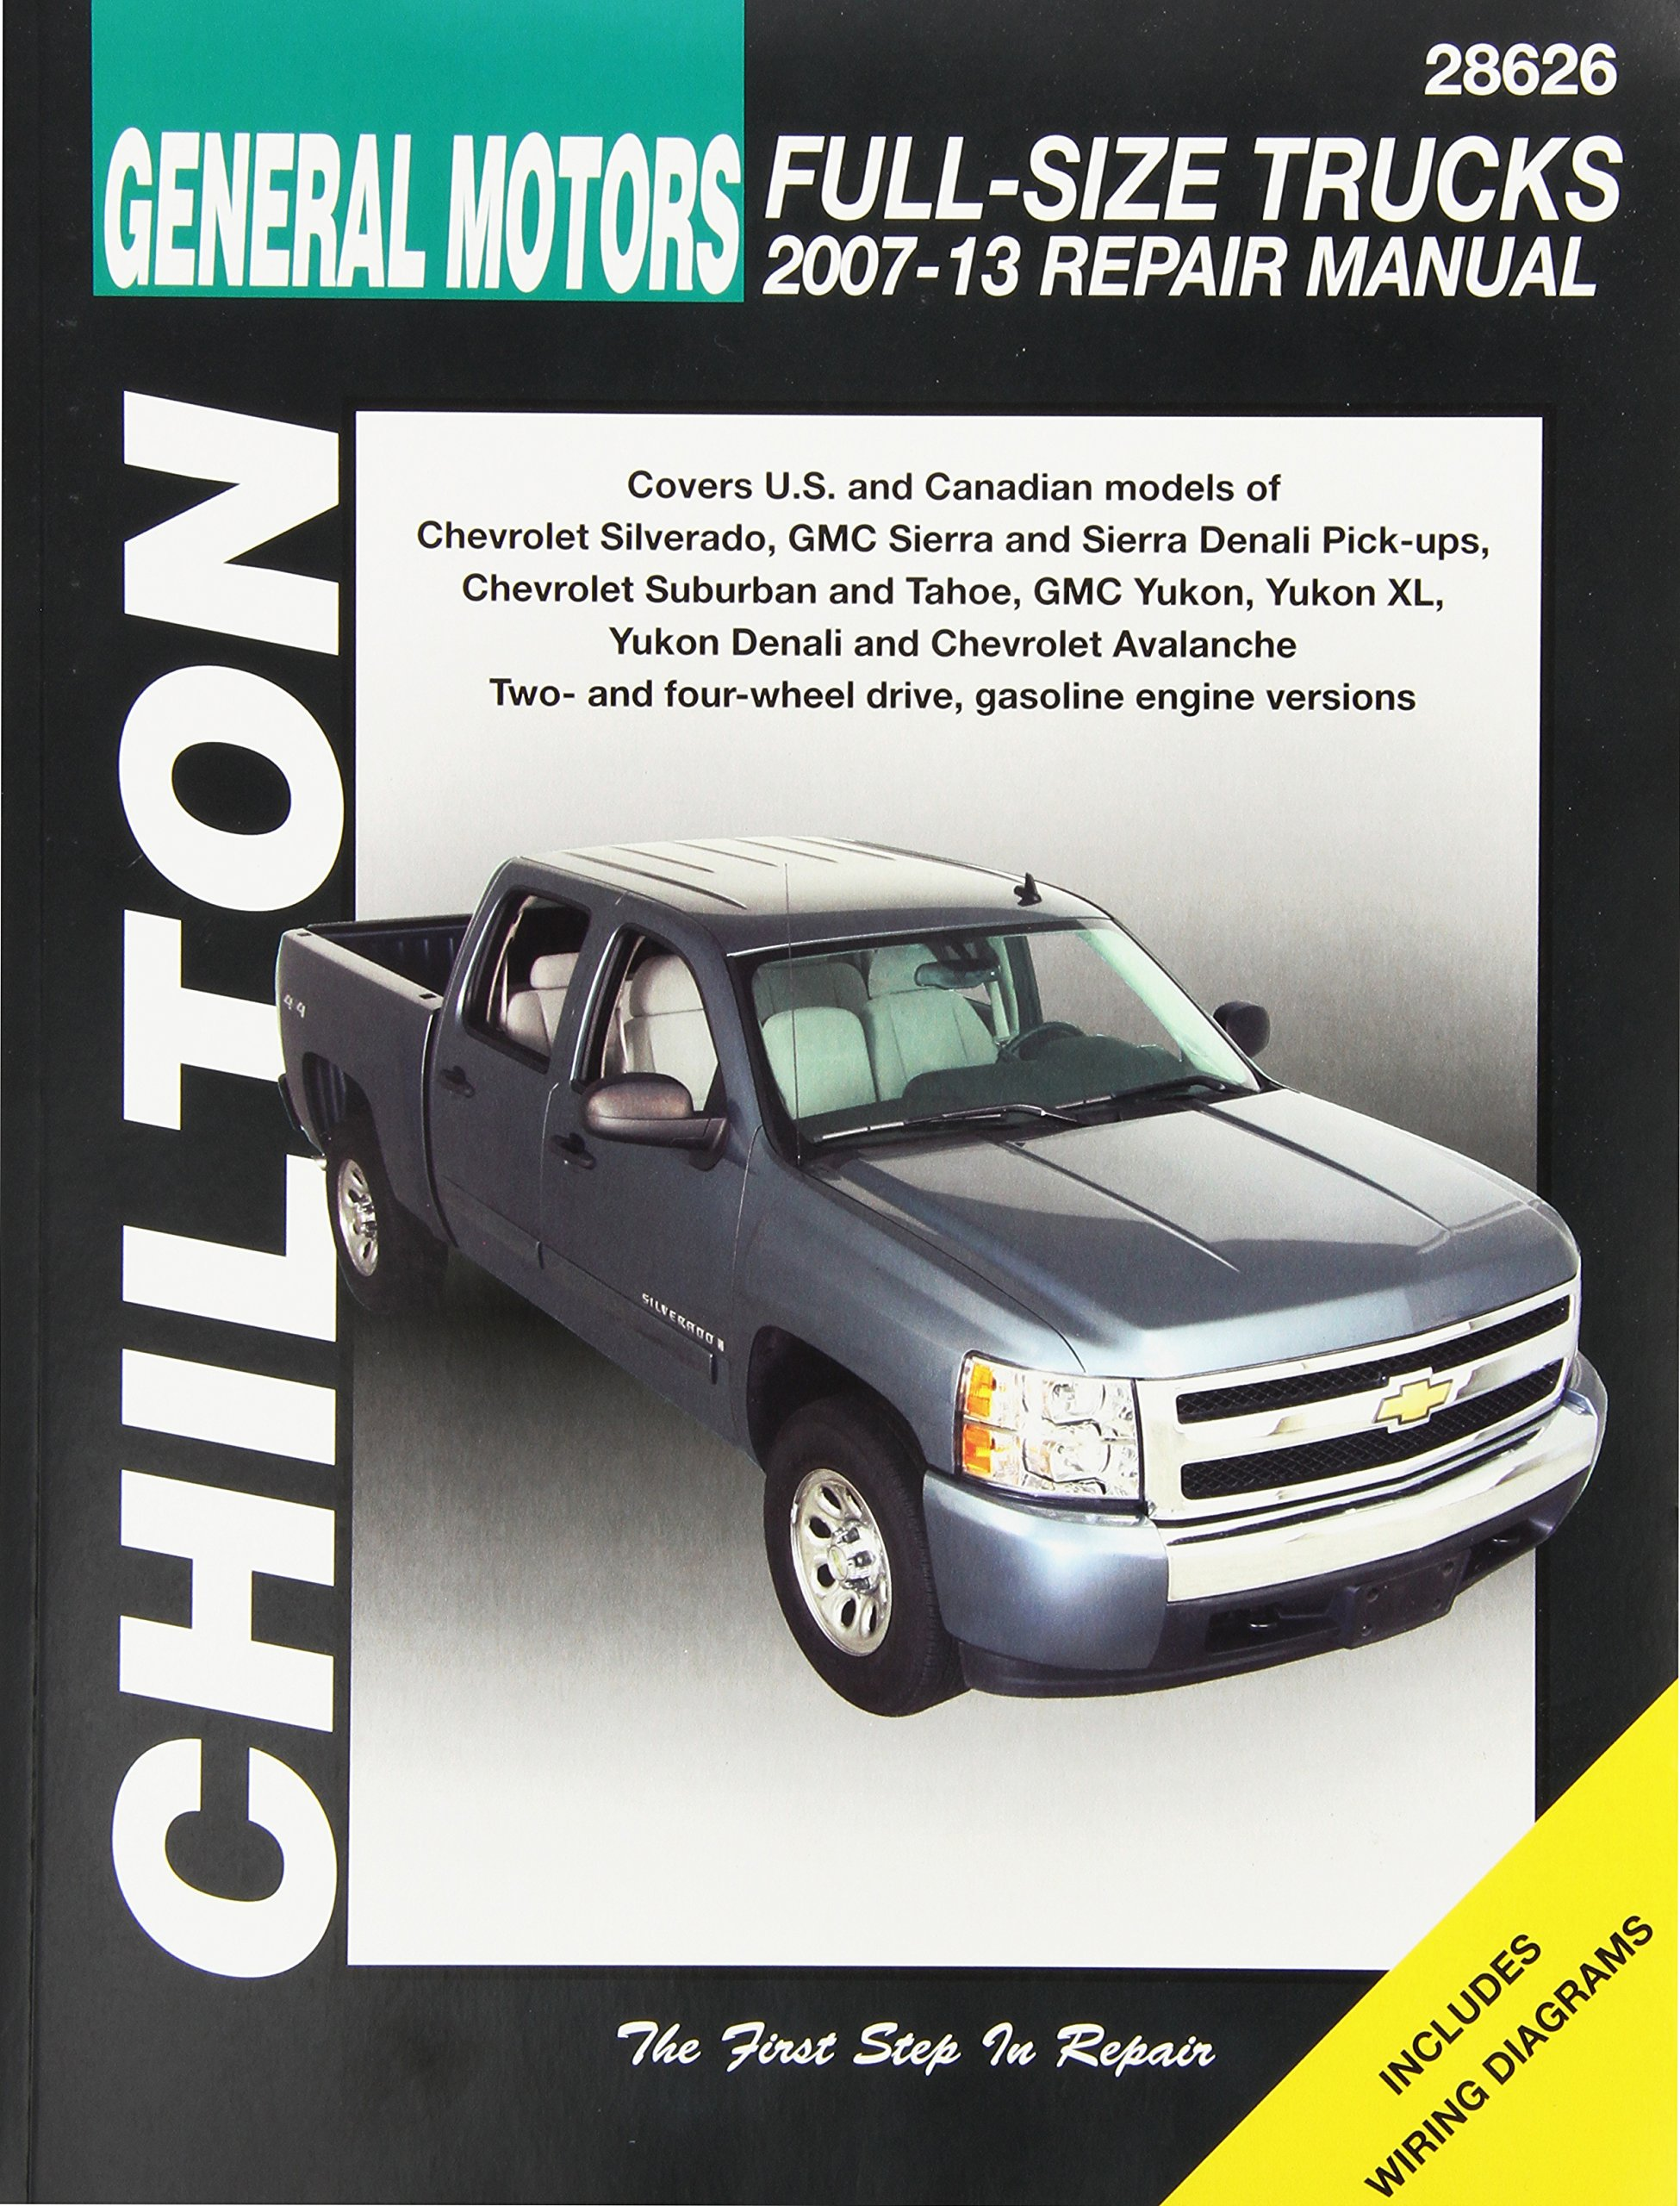 2012 gmc yukon xl owners manual user guide manual that easy to read u2022 rh sibere co owner's manual denon avr e400 owners manual dewalt dcd950